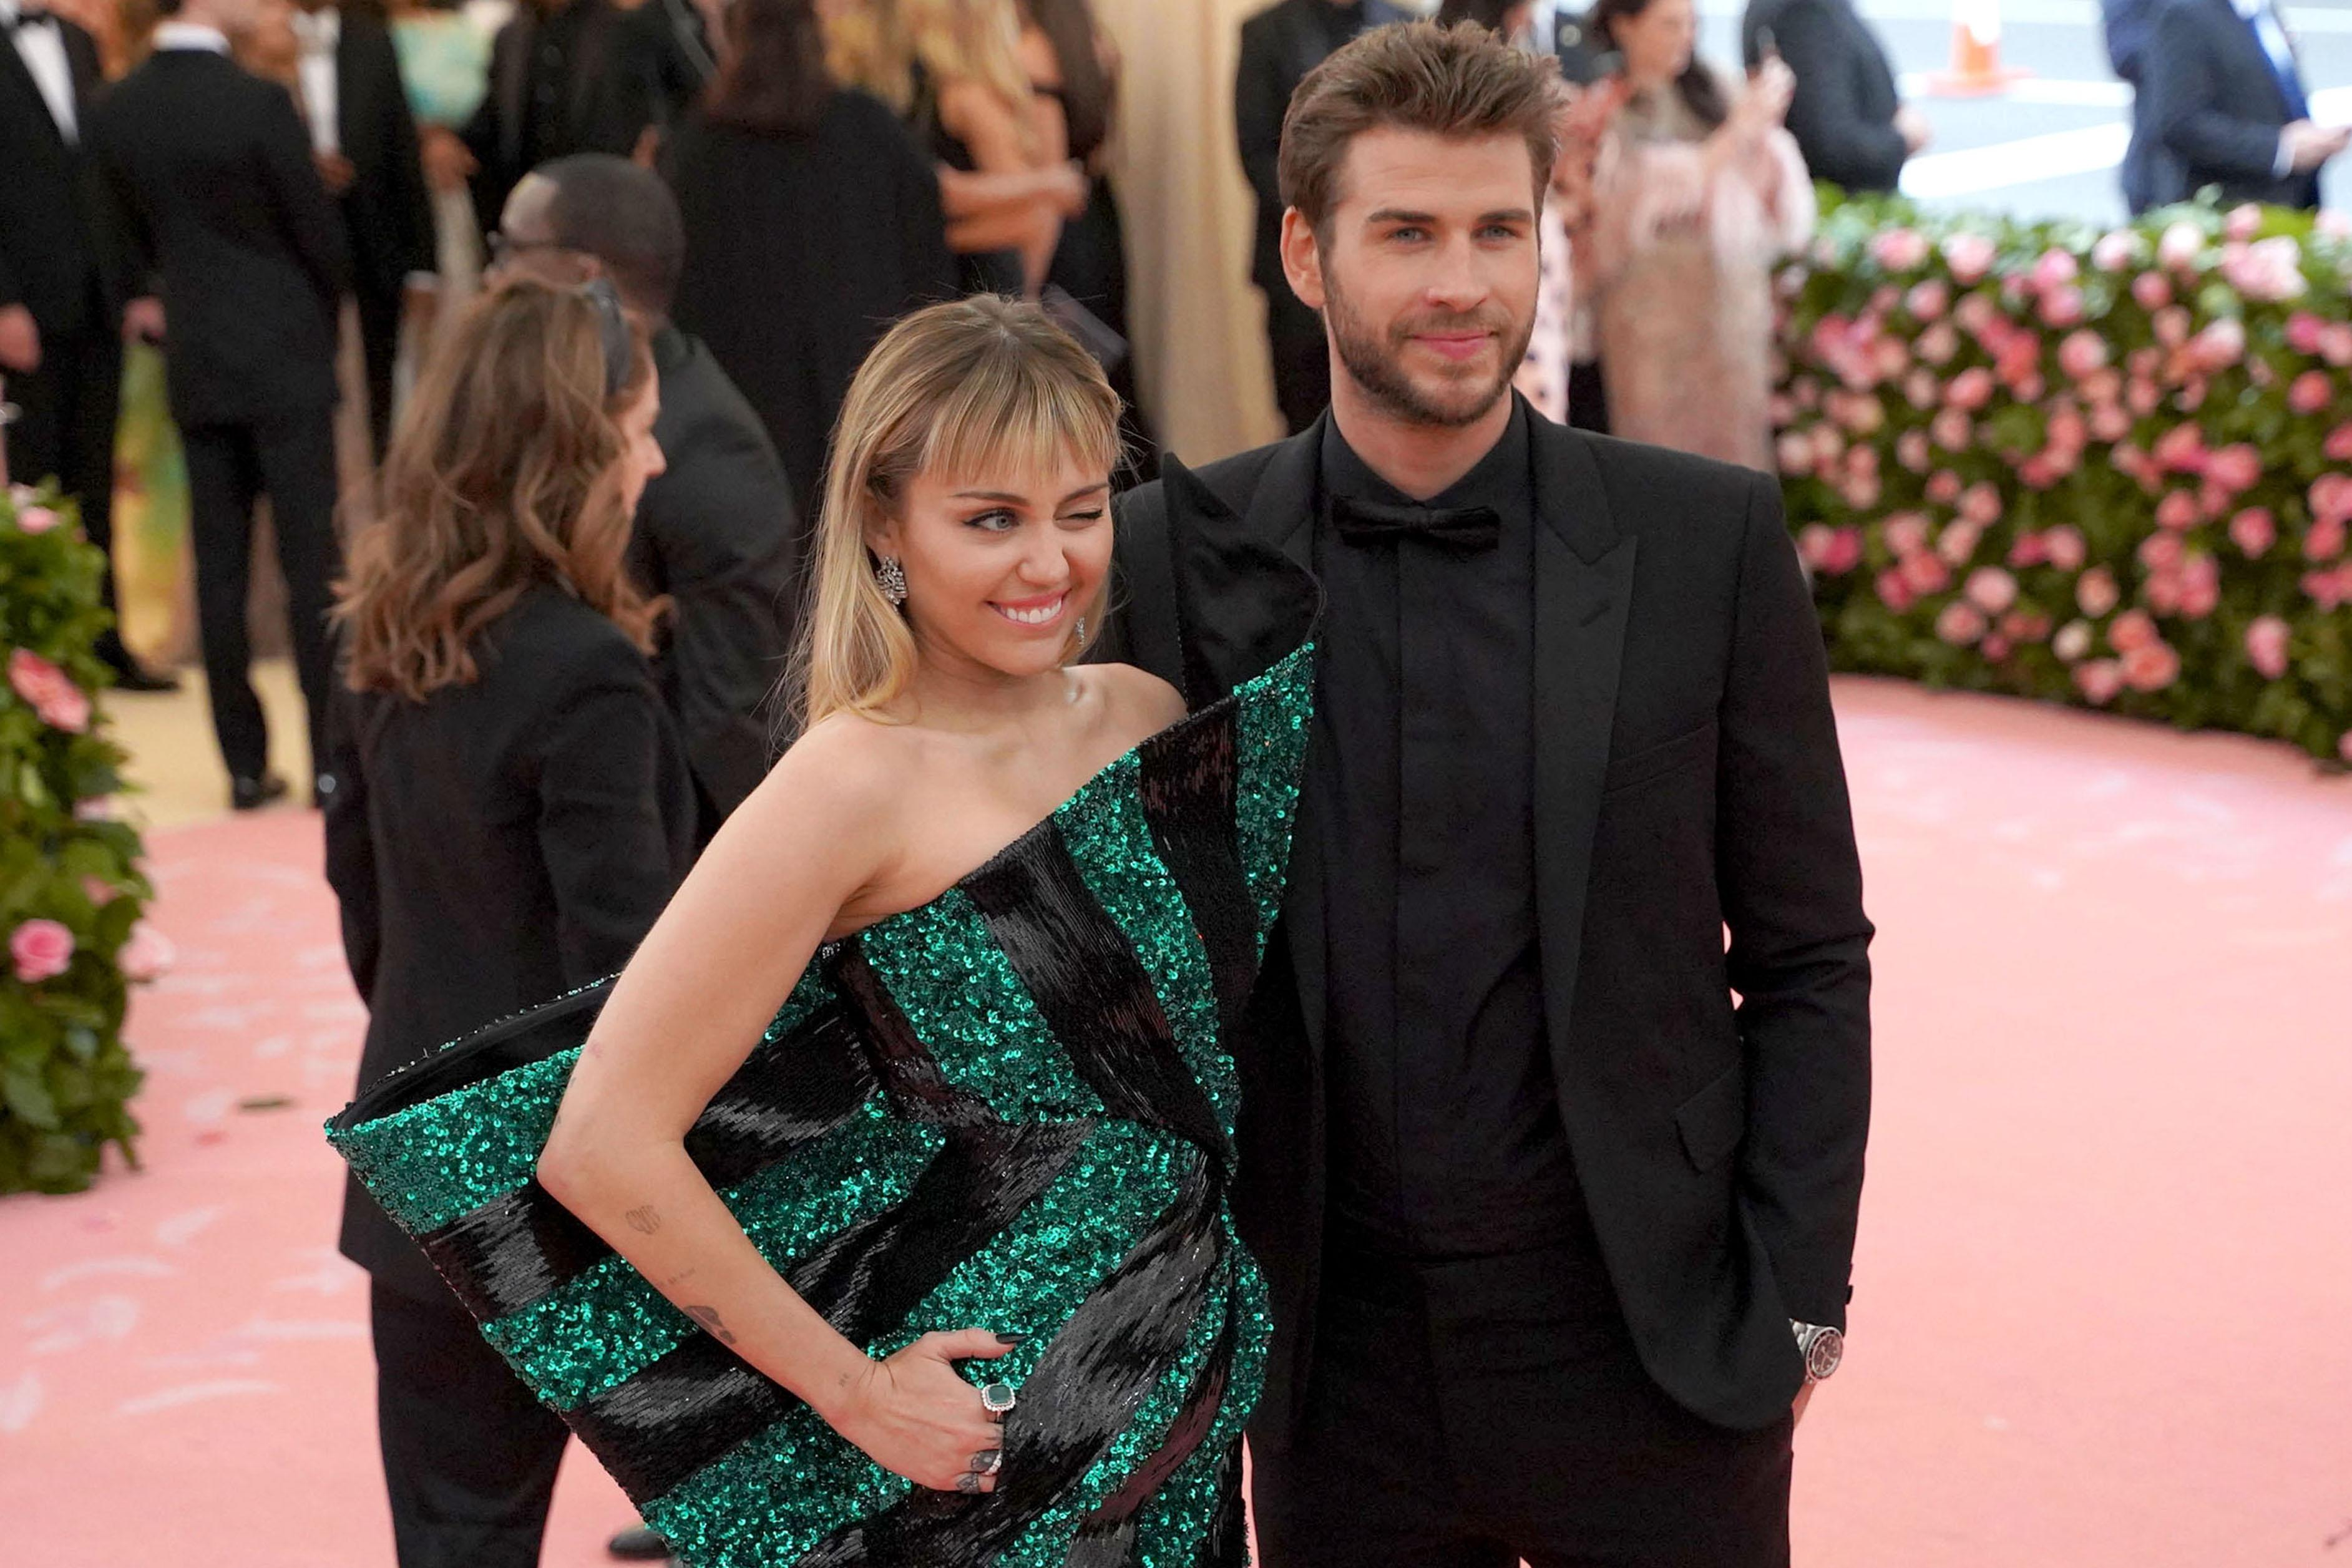 Miley Cyrus and Liam Hemsworth attend The Metropolitan Museum Of Art's 2019 Costume Institute Benefit